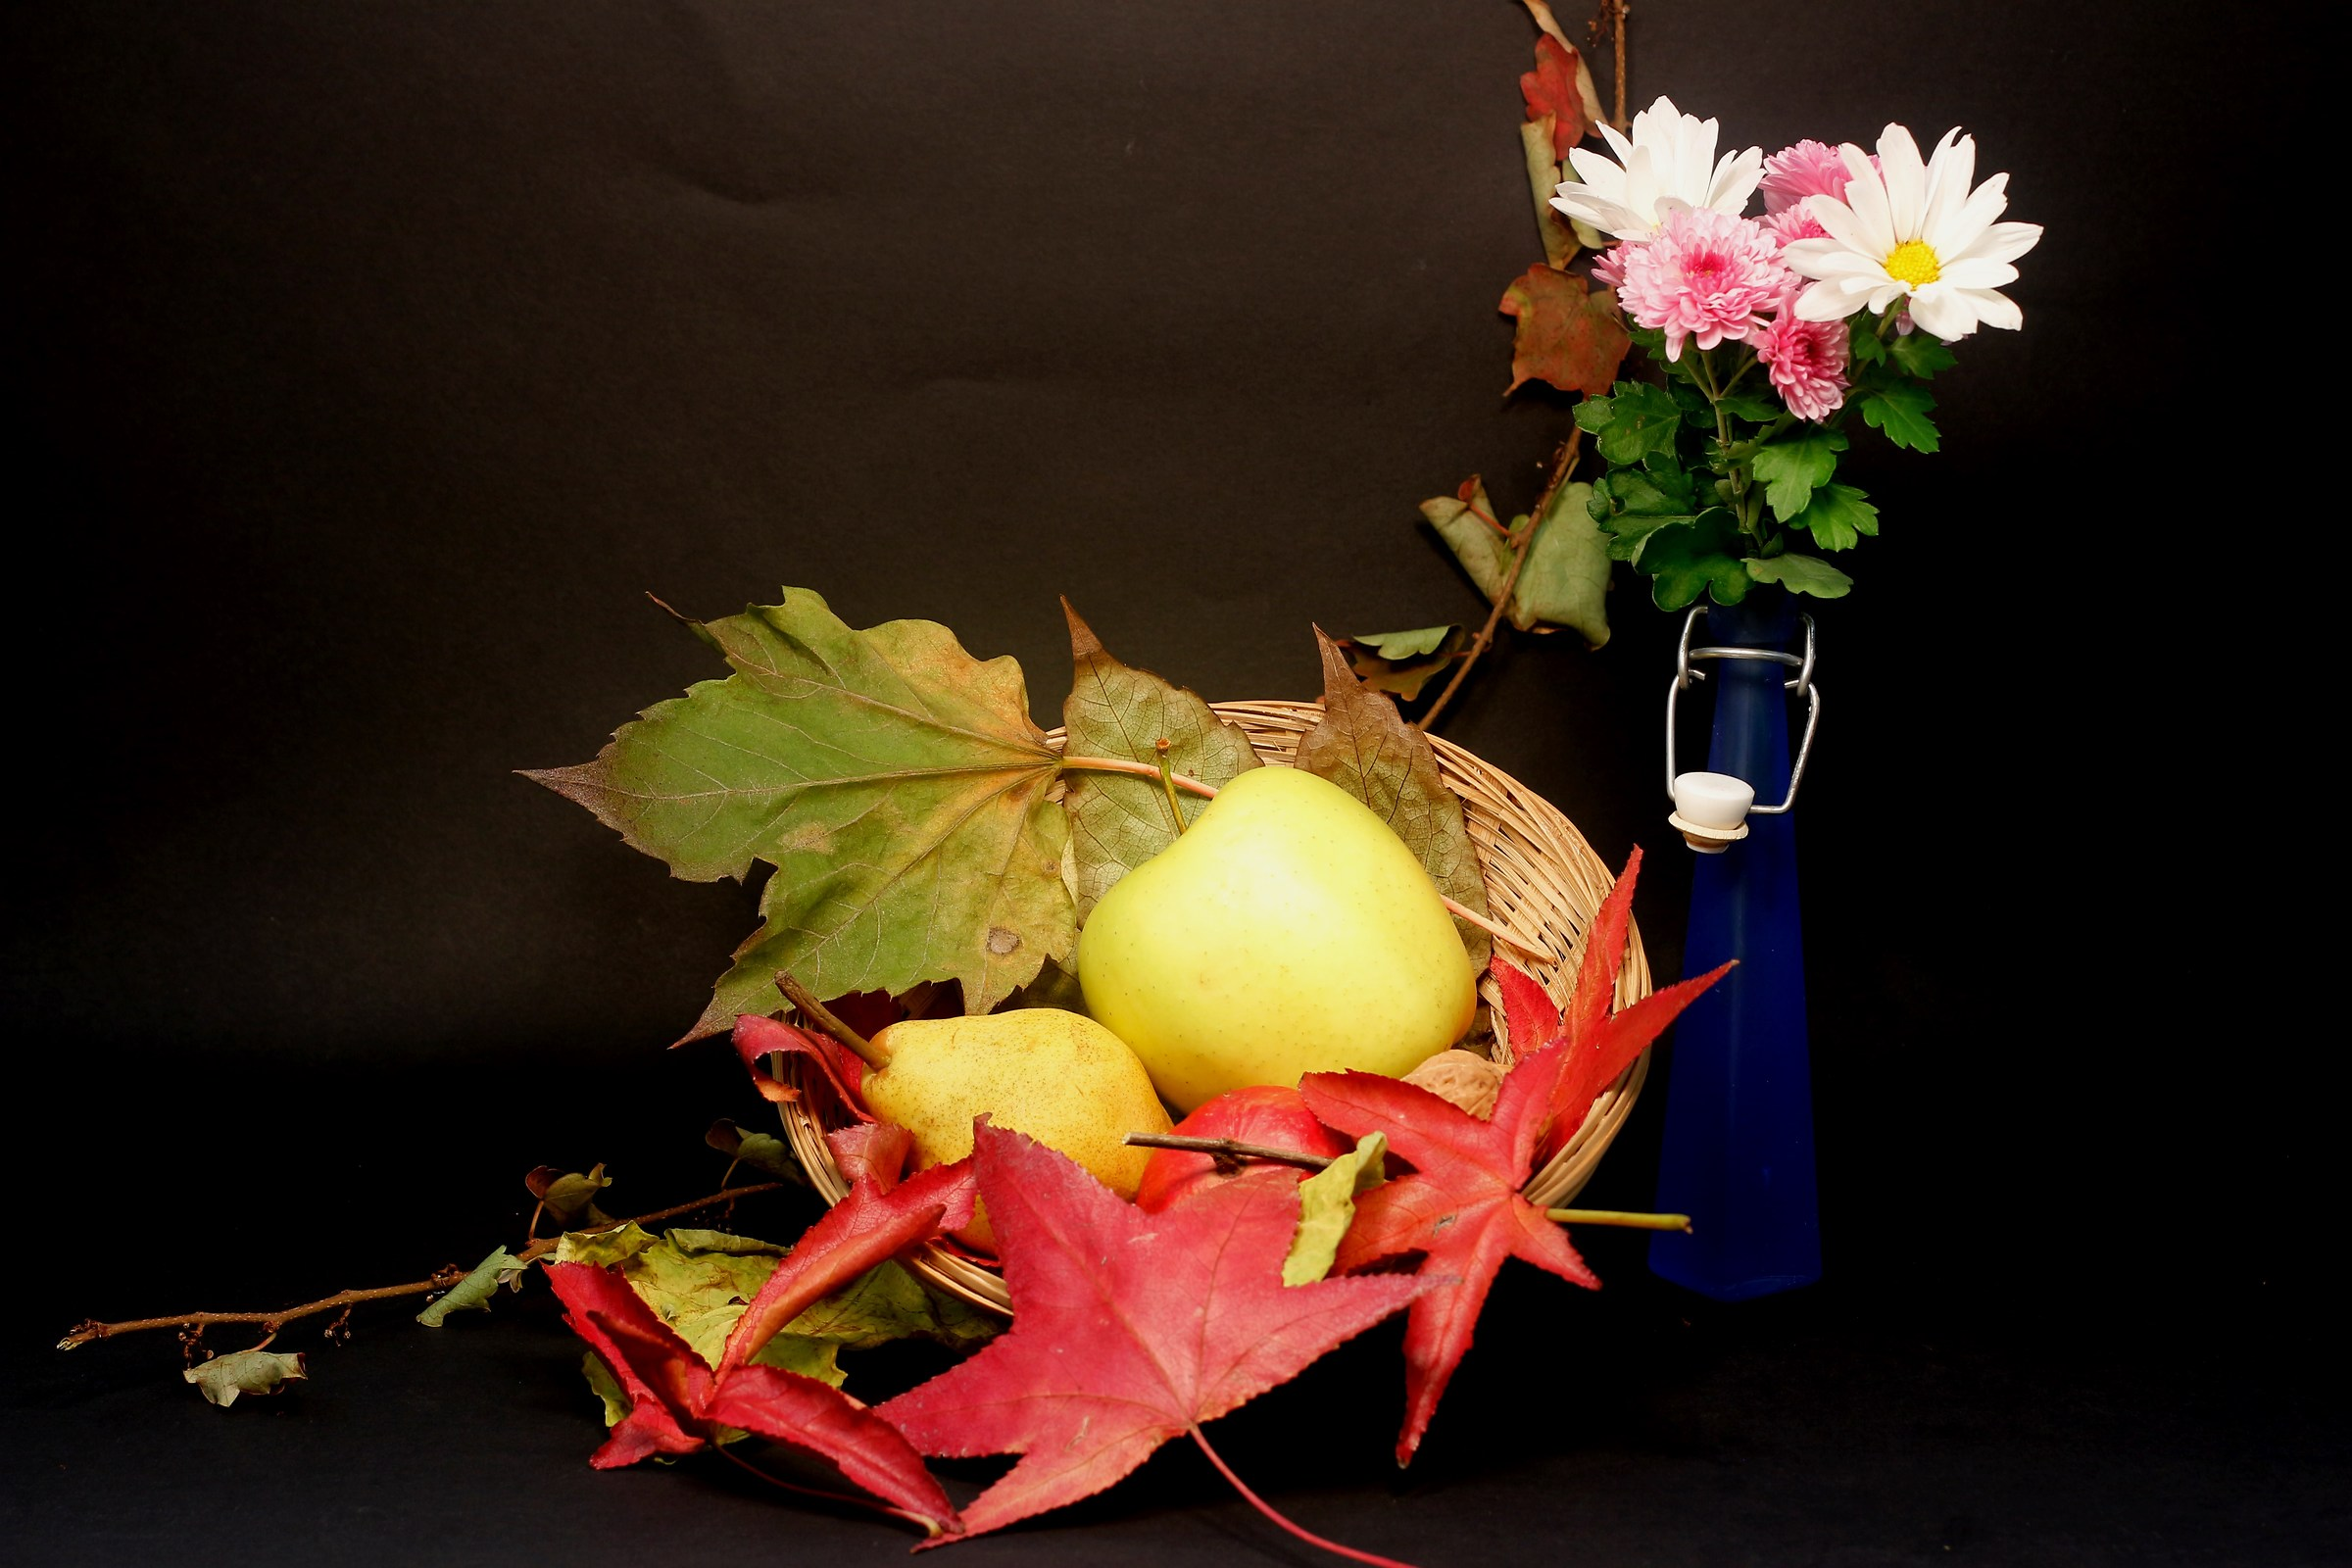 Autumn Flowers and fruits...